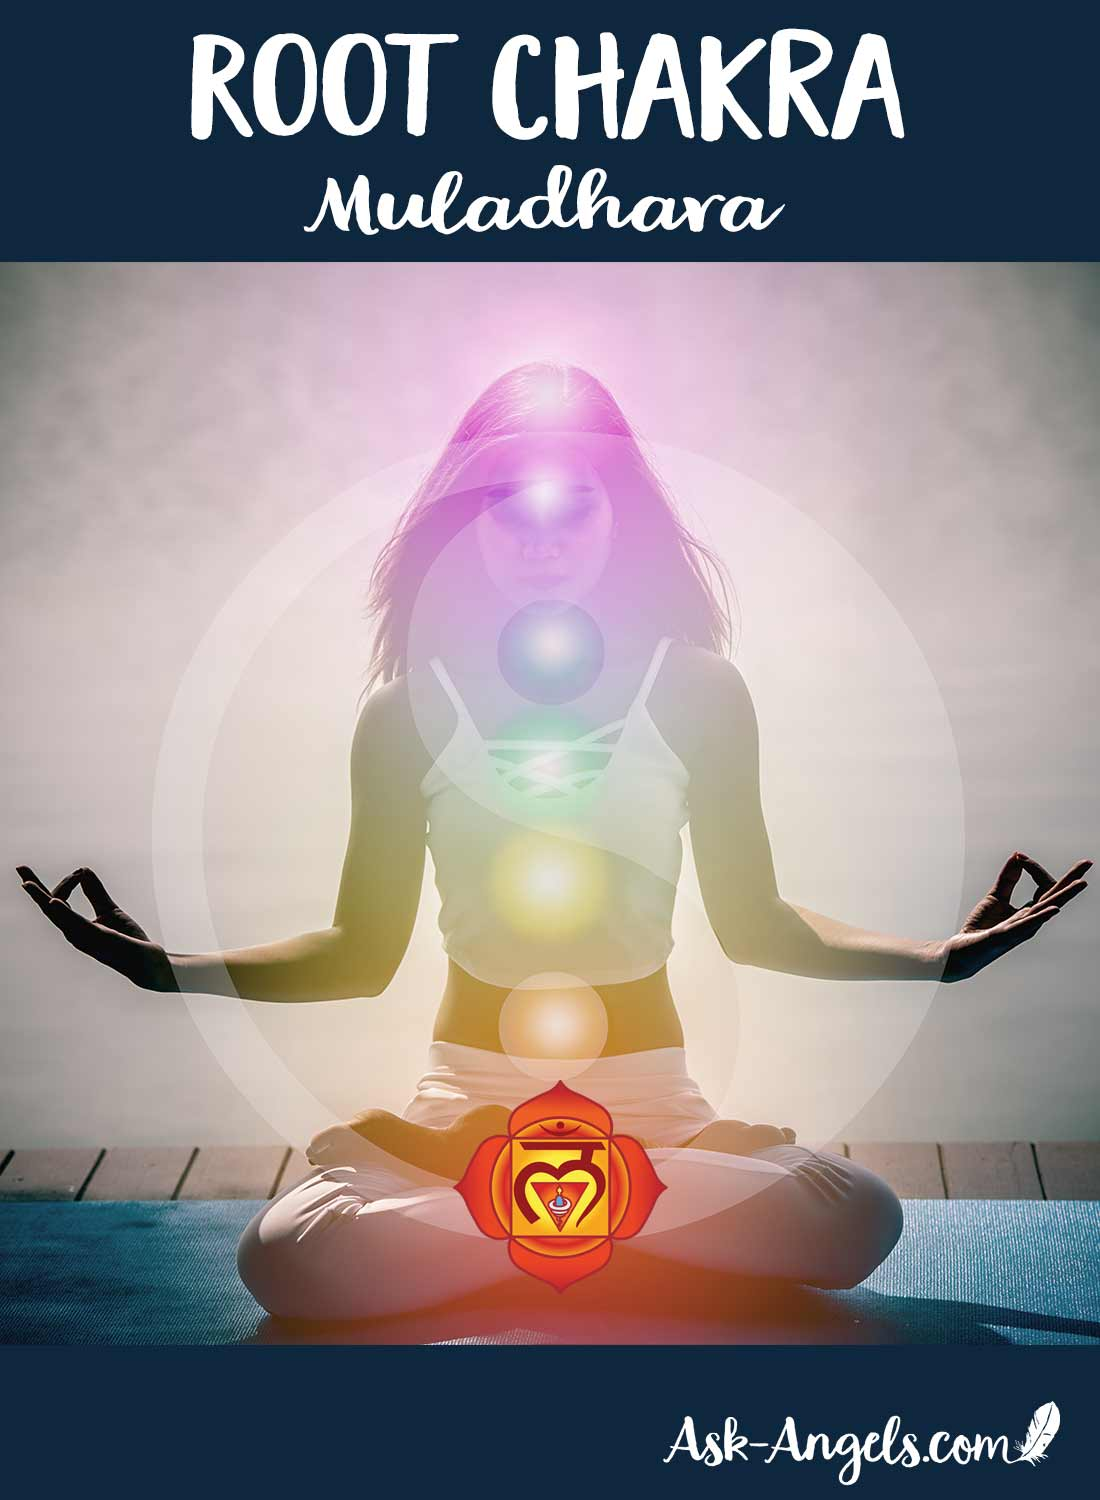 The root chakra is the foundation of your energetic body and the base support for the rest of your chakra system.